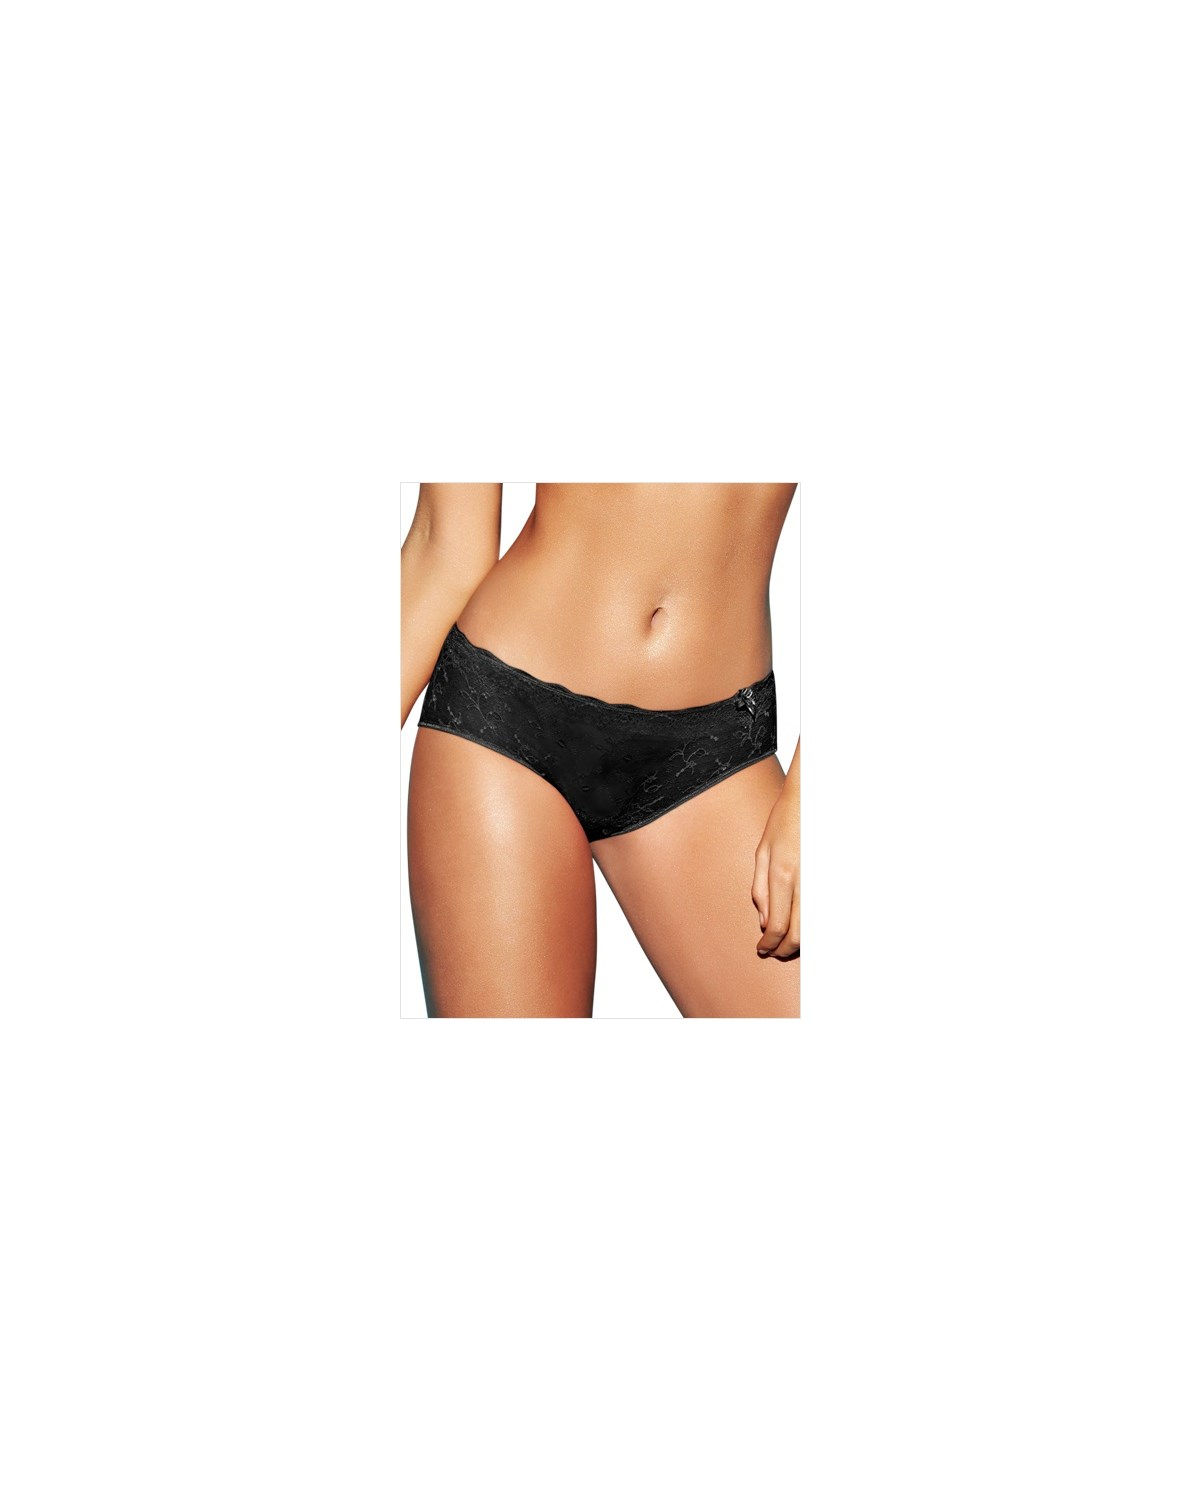 essence hip hugger panty-700- Black-MainImage